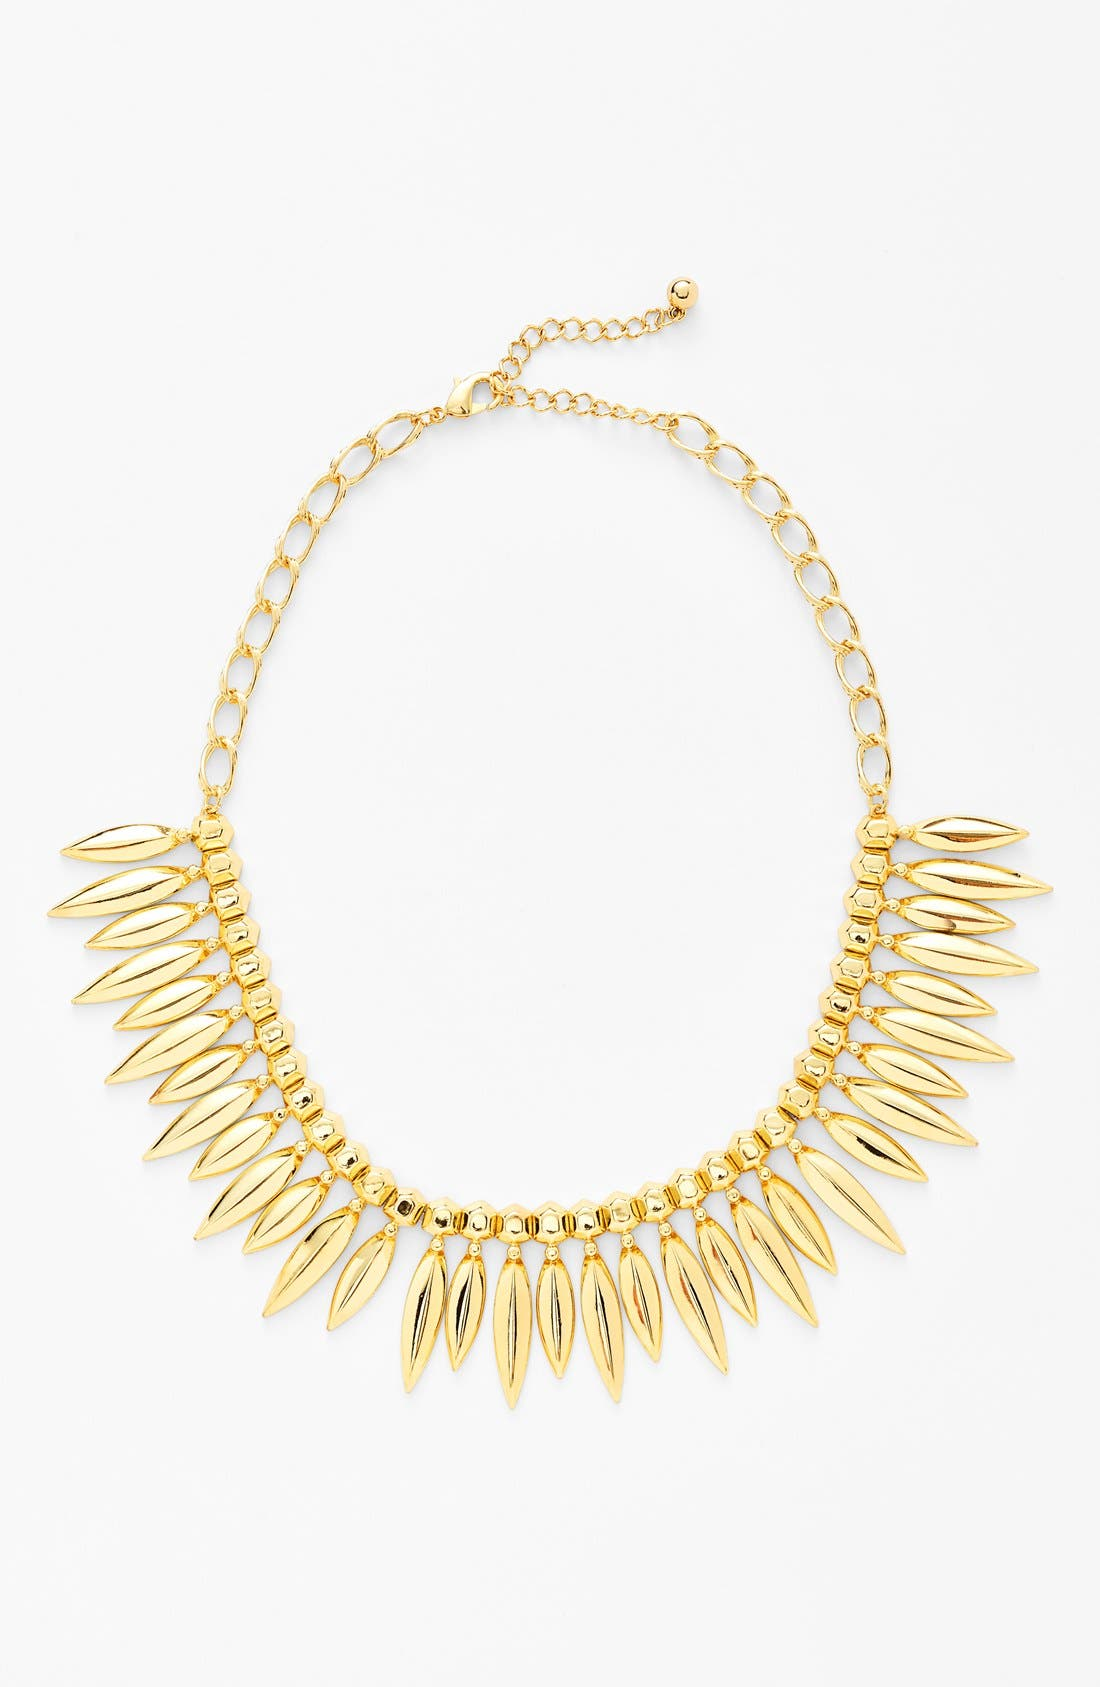 Main Image - Jules Smith Spiked Statement Necklace